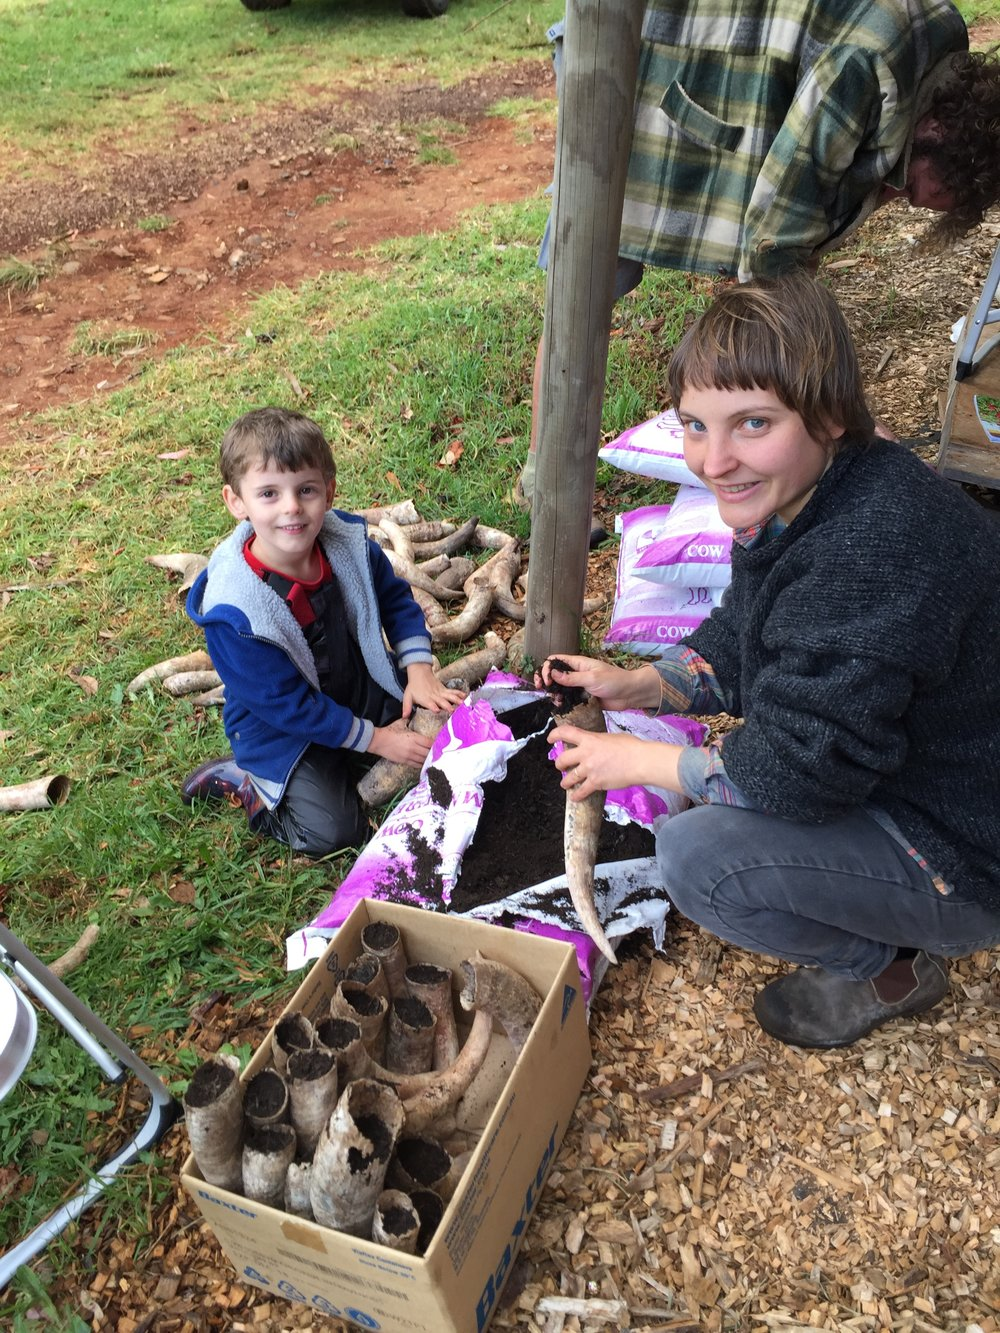 My son Oscar and I filling the horns with organic cow manure.